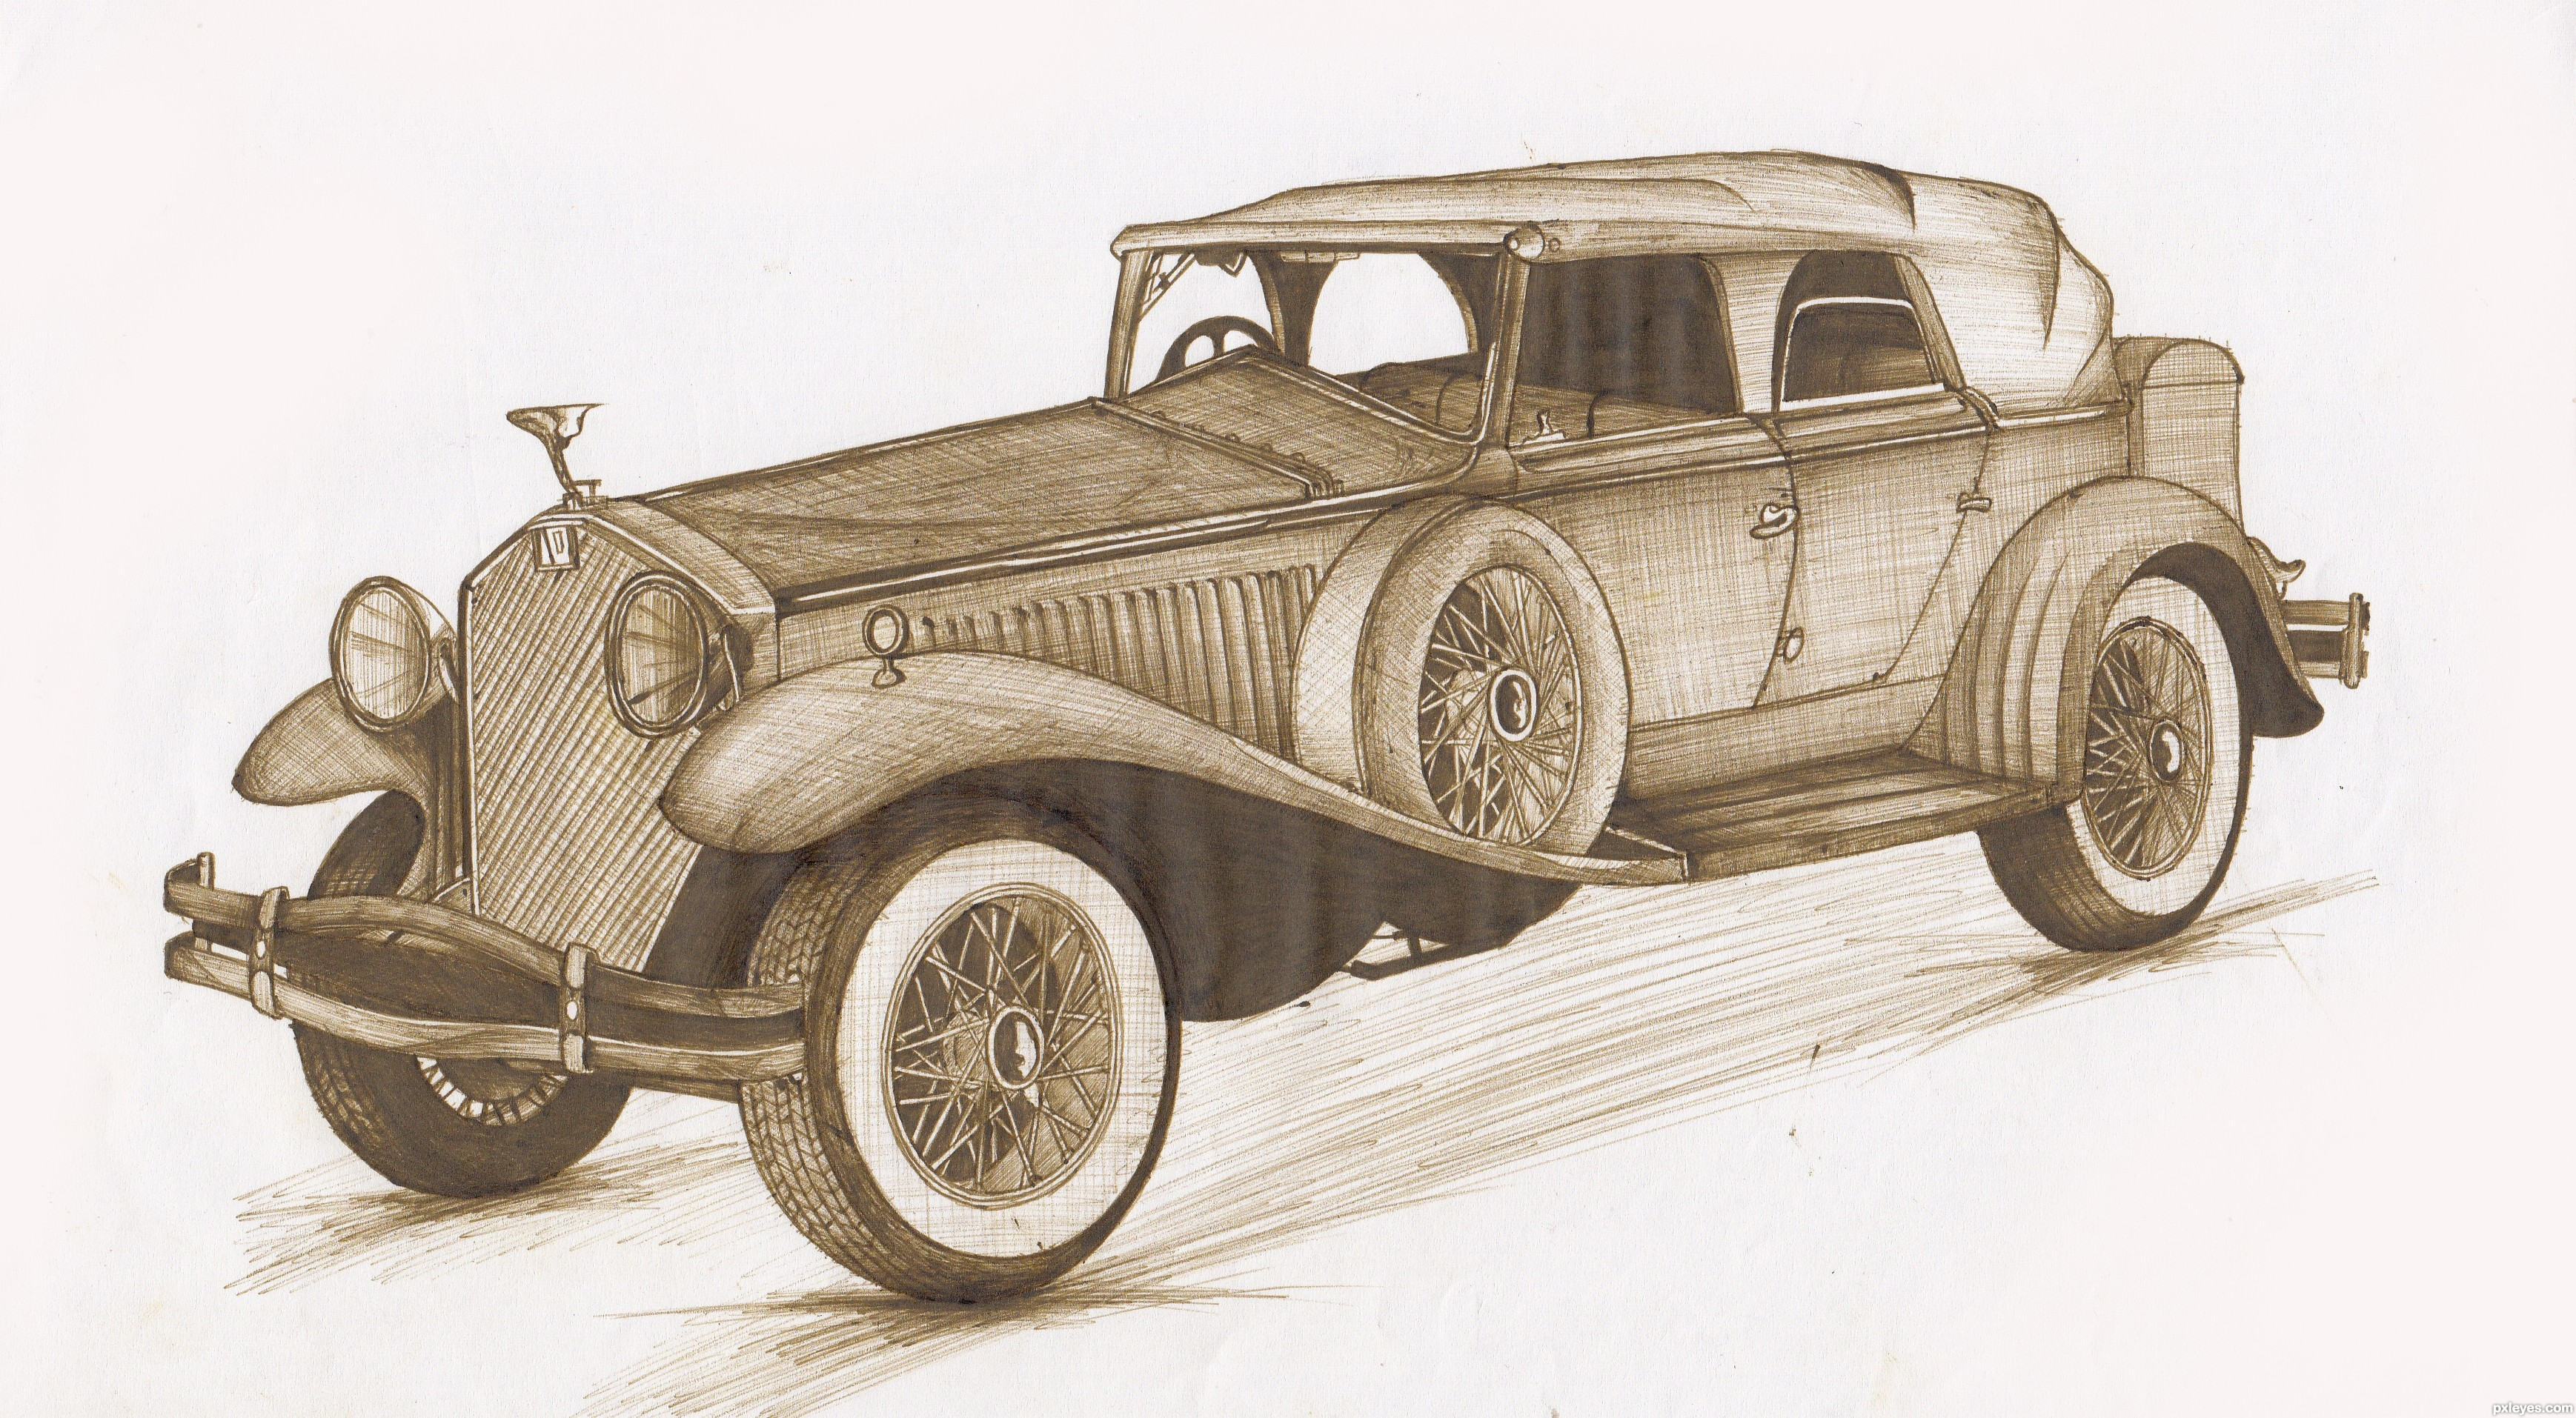 3476x1914 Old Memories Picture, By Lky For Vintage Vehicles Drawing Contest